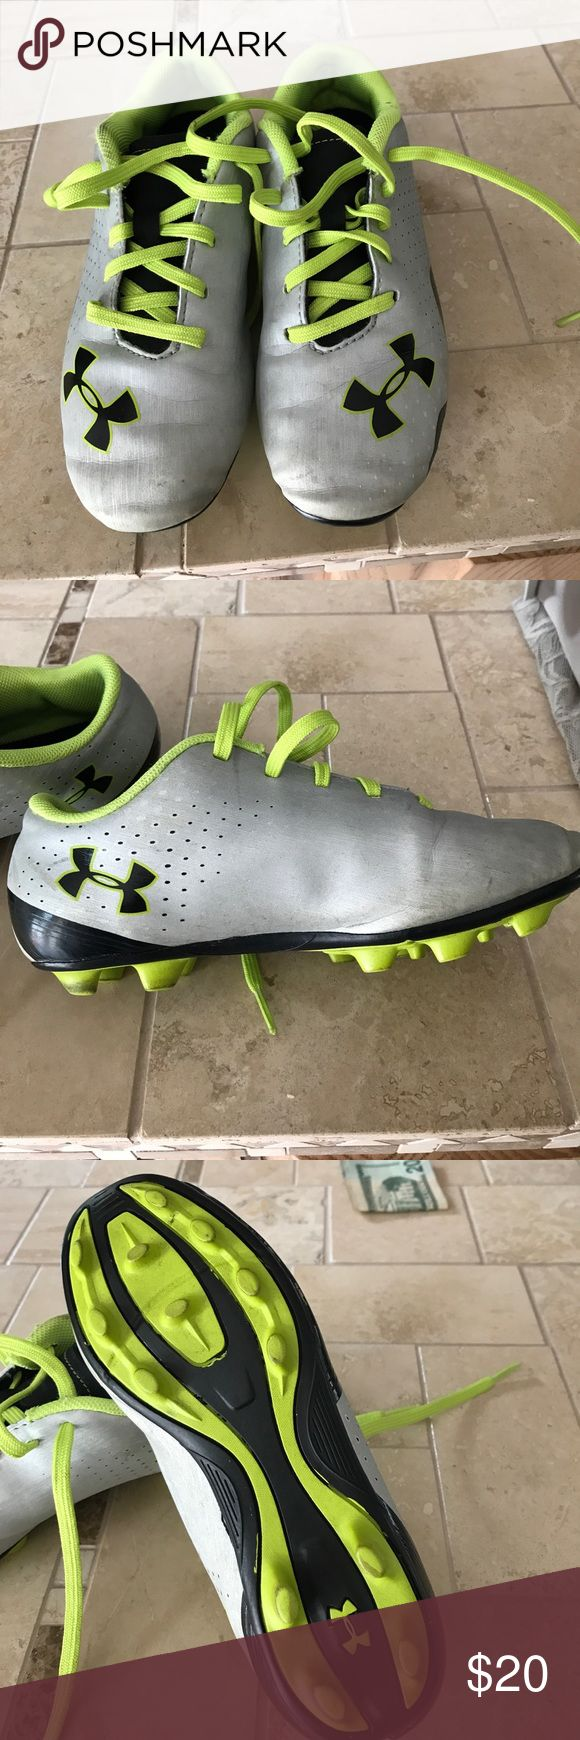 Boys football cleats Boys Under Armour football cleats. Cleats worn for one football season. In good condition but do show some signs of normal wear. No rips or major stains. Boys size 1. Silver and lime green color. Under Armour Shoes Sneakers